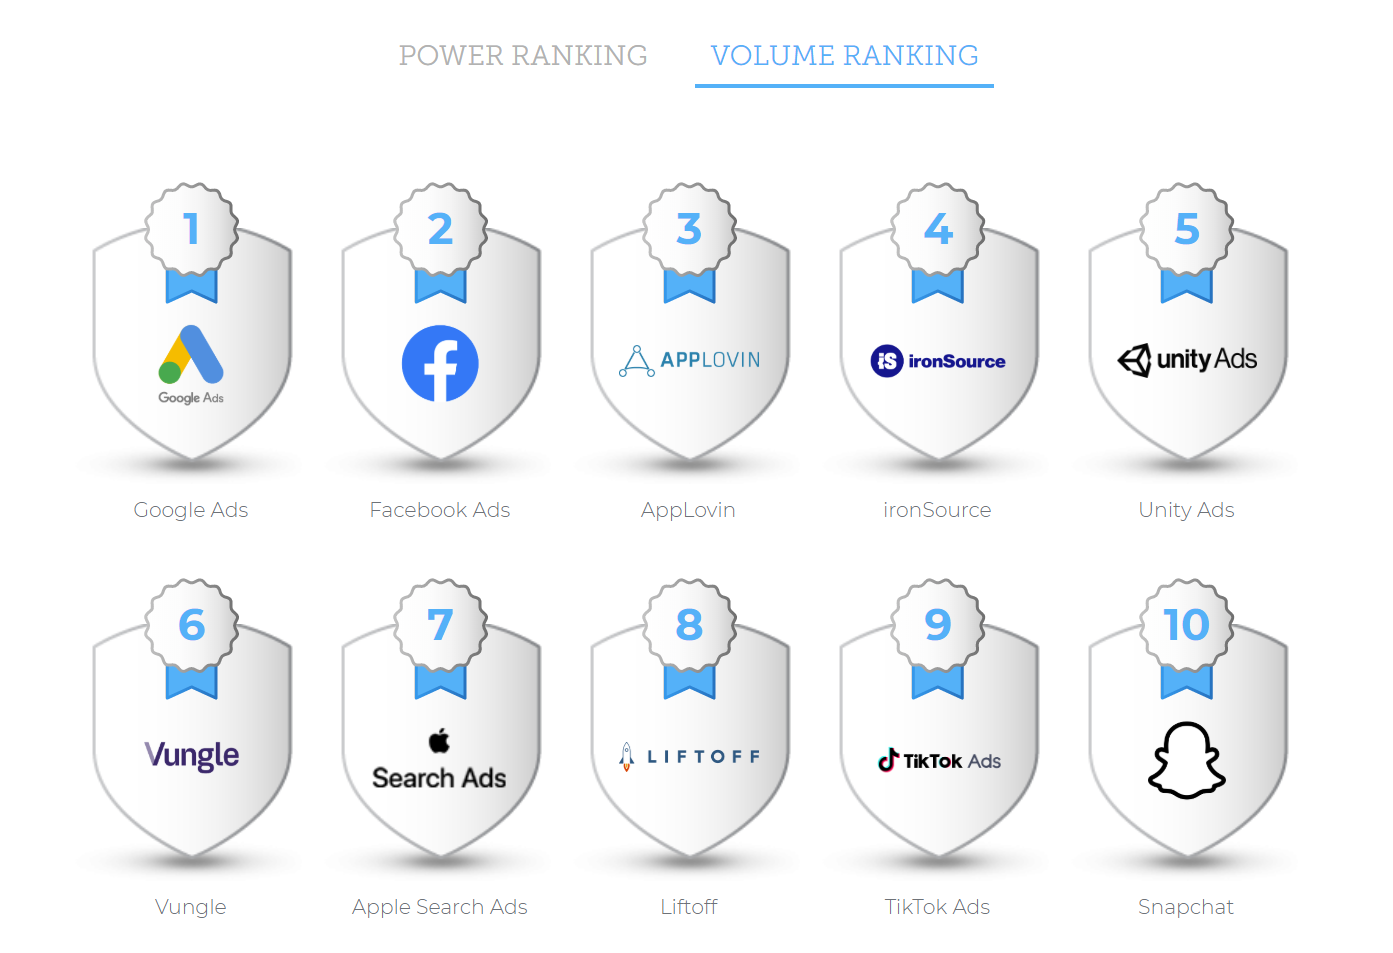 AppsFlyer Performance Index Volume Ranking